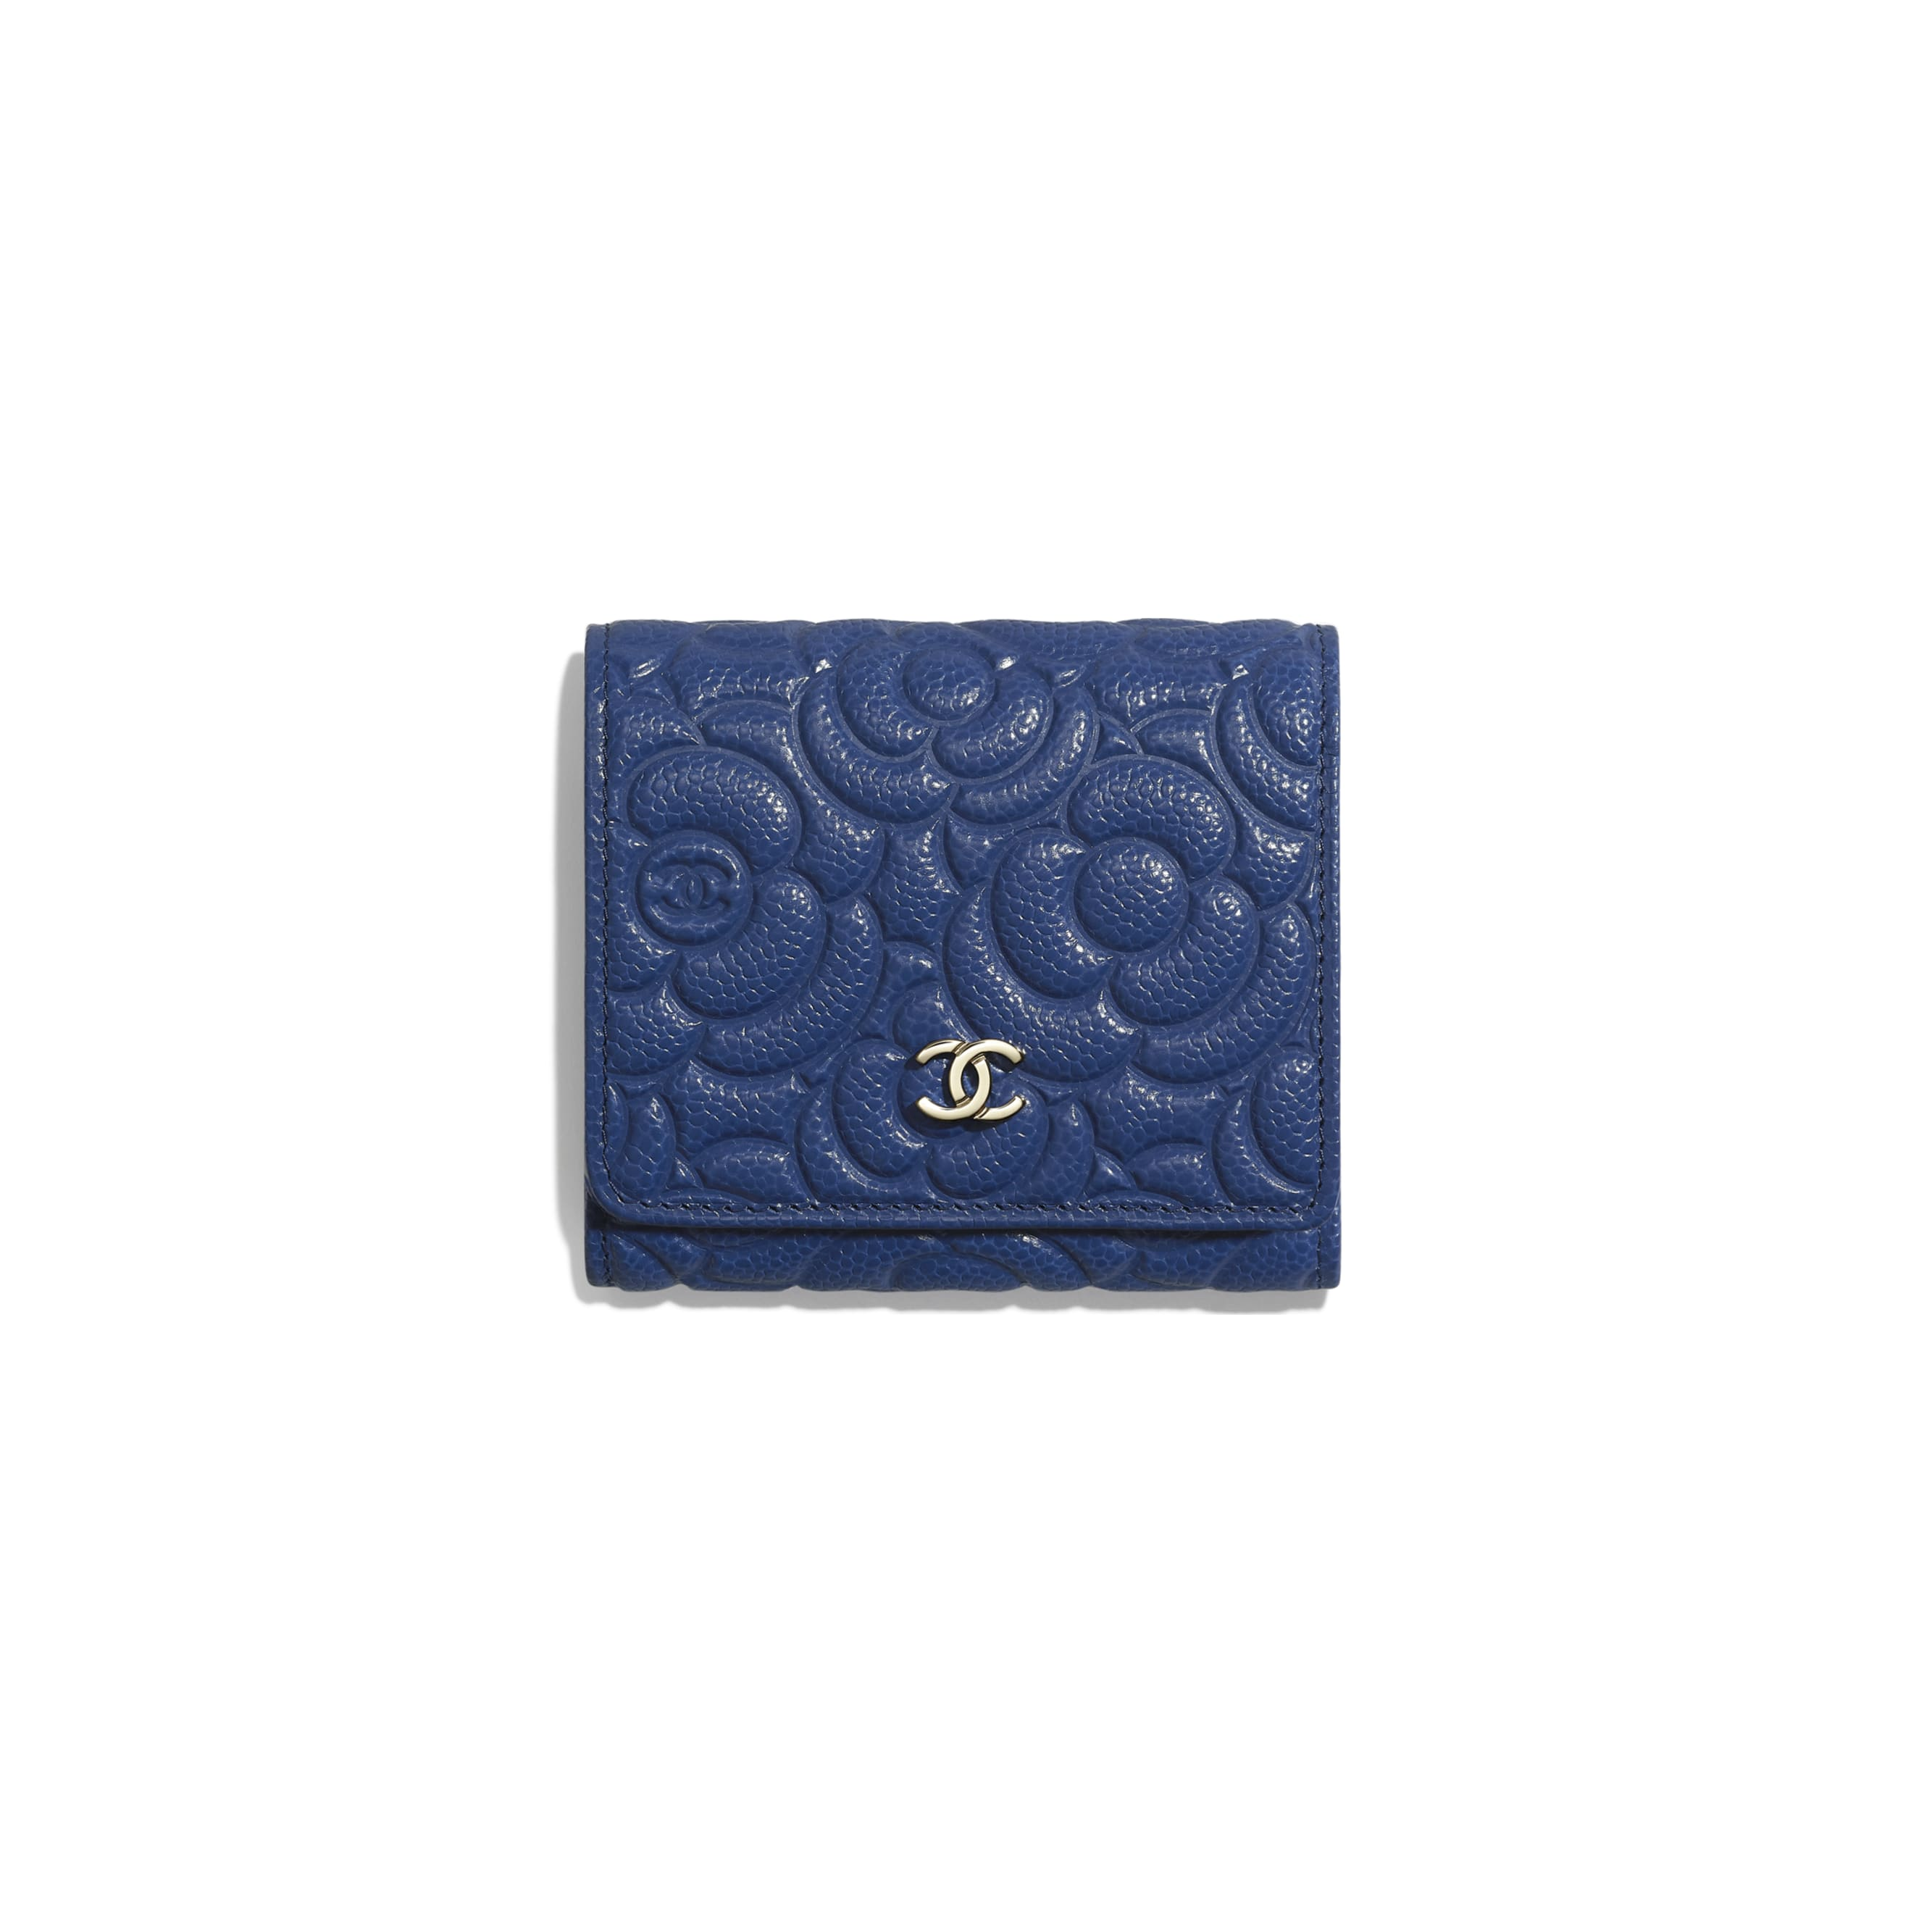 Small Flap Wallet - Dark Blue - Grained Shiny Calfskin & Gold-Tone Metal - CHANEL - Default view - see standard sized version